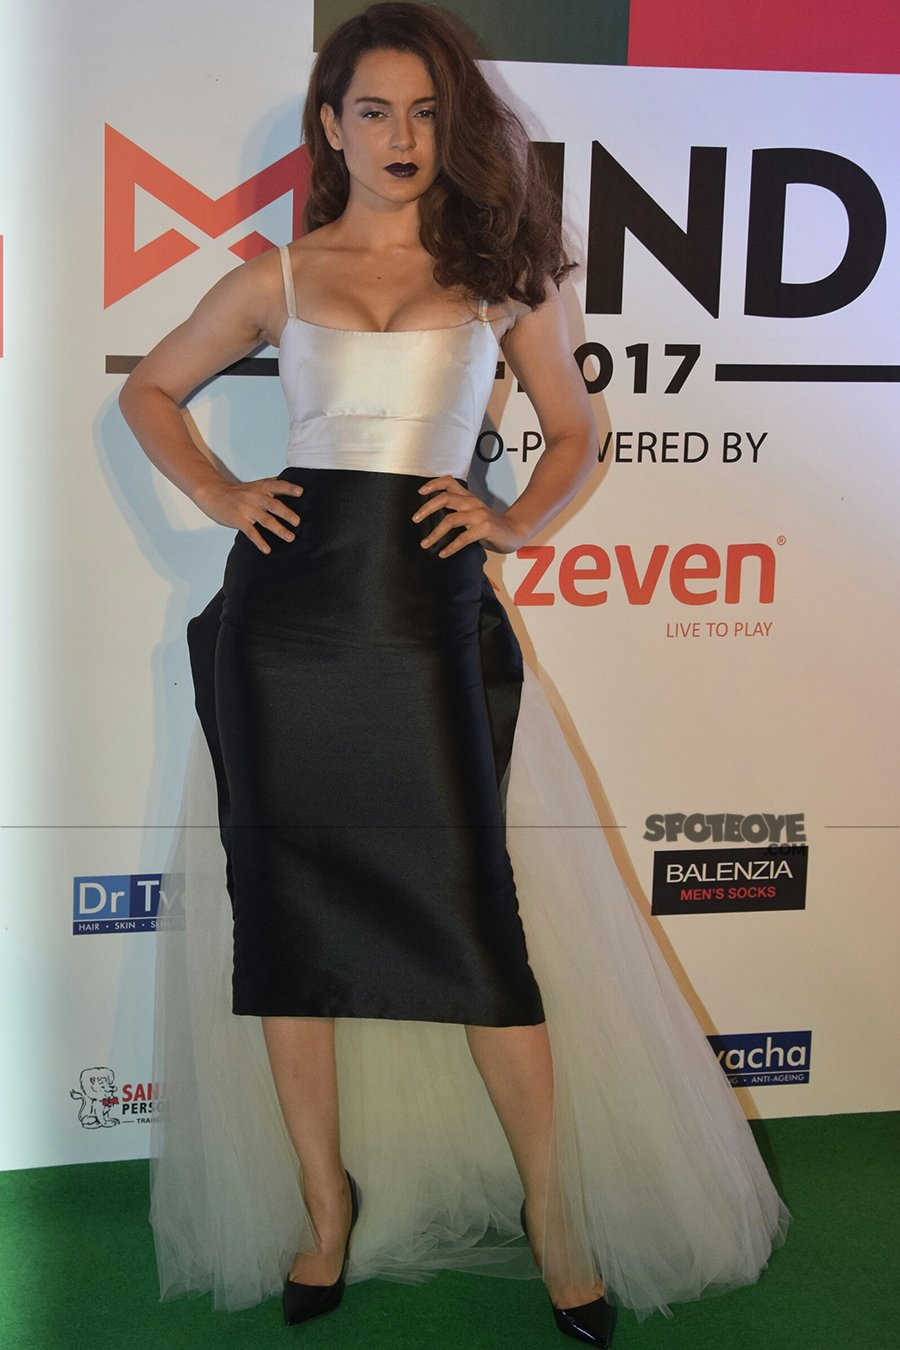 kangana ranaut poses for the media